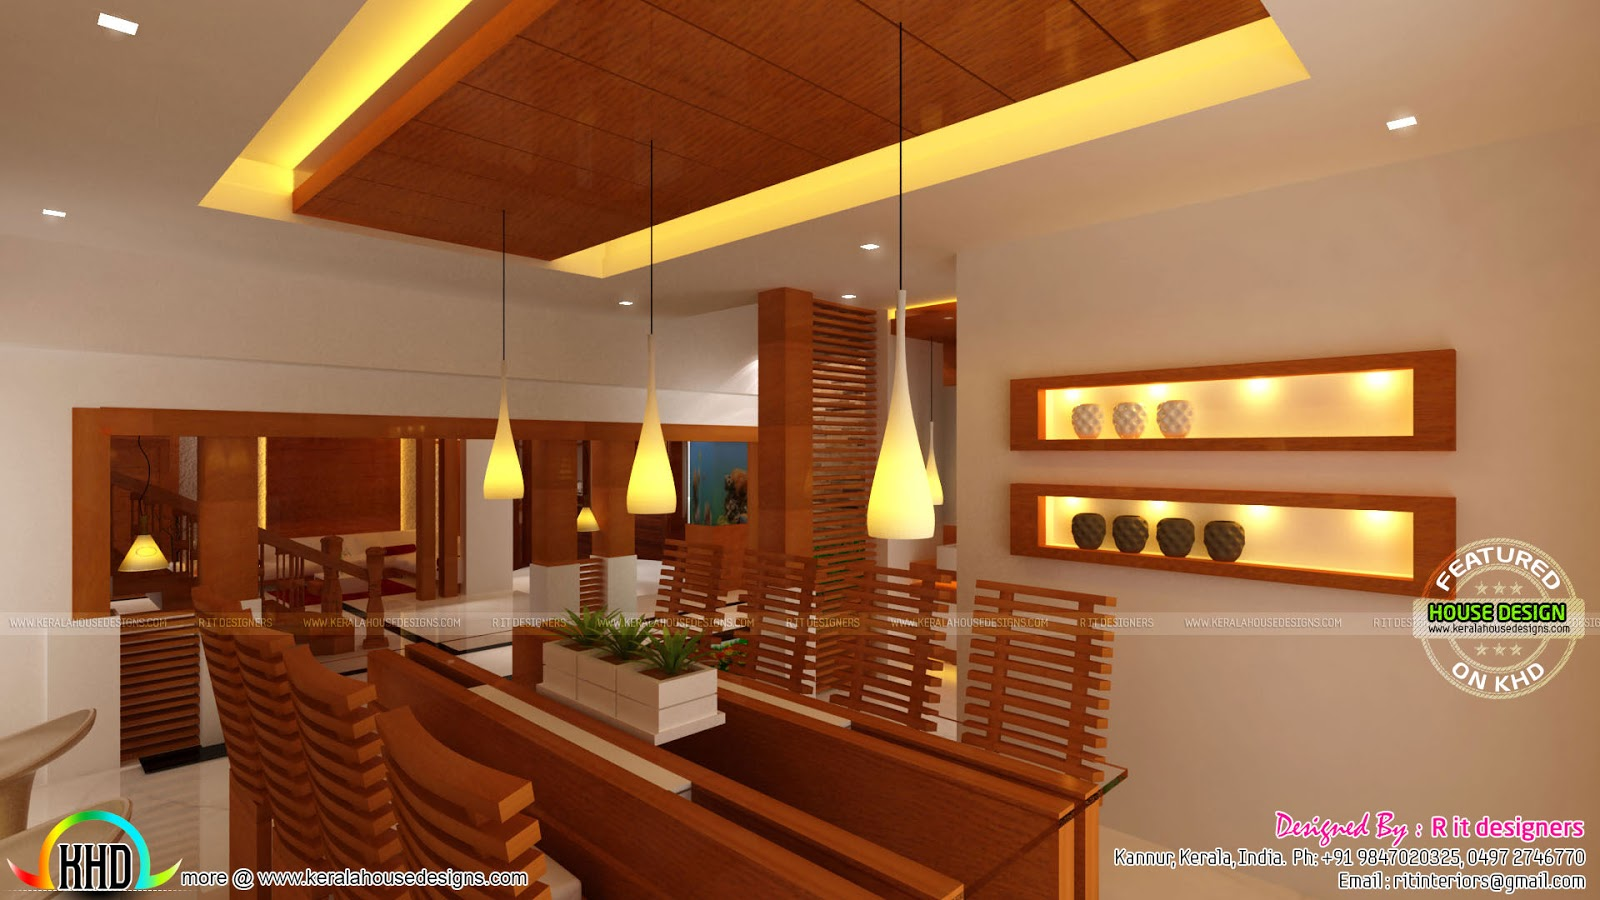 Wooden finish interior designs kerala home design and Wooden interior